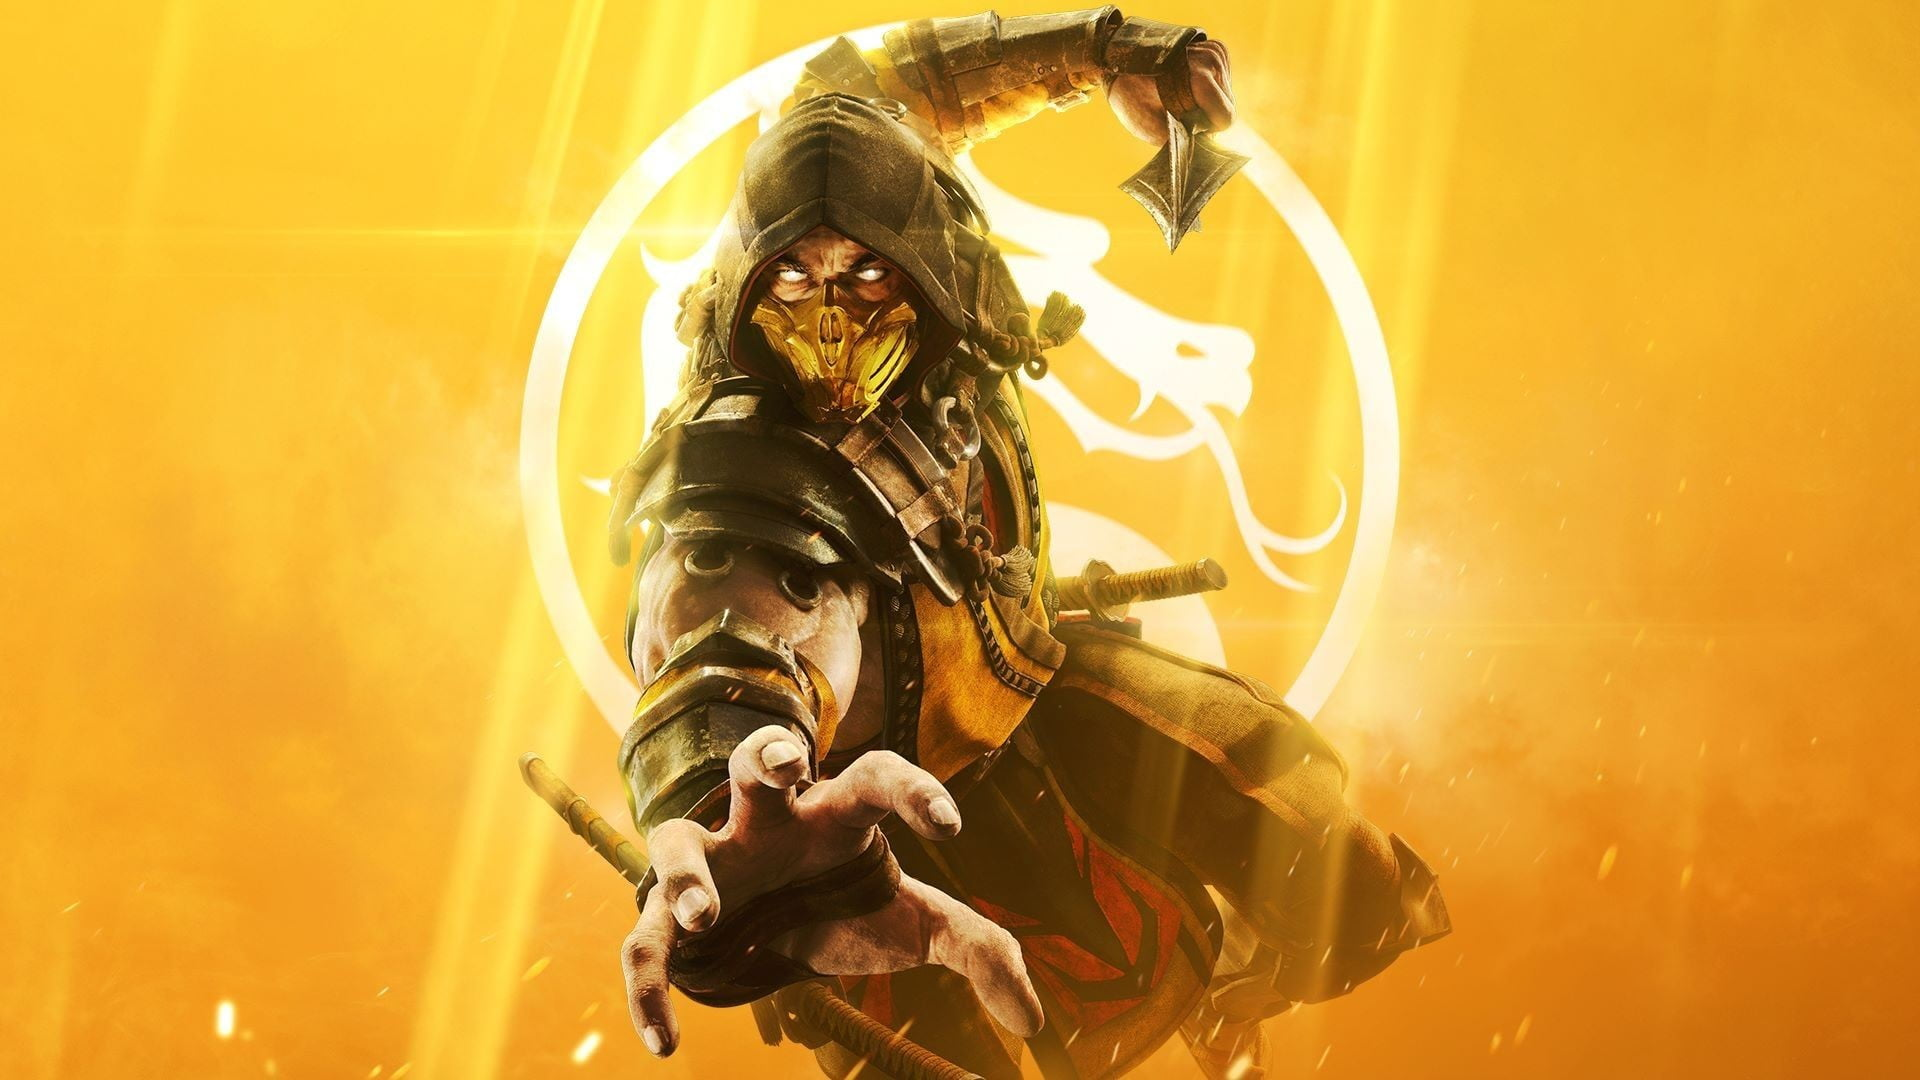 Data Mine Shows 13 Mortal Kombat 11 Characters are Coming